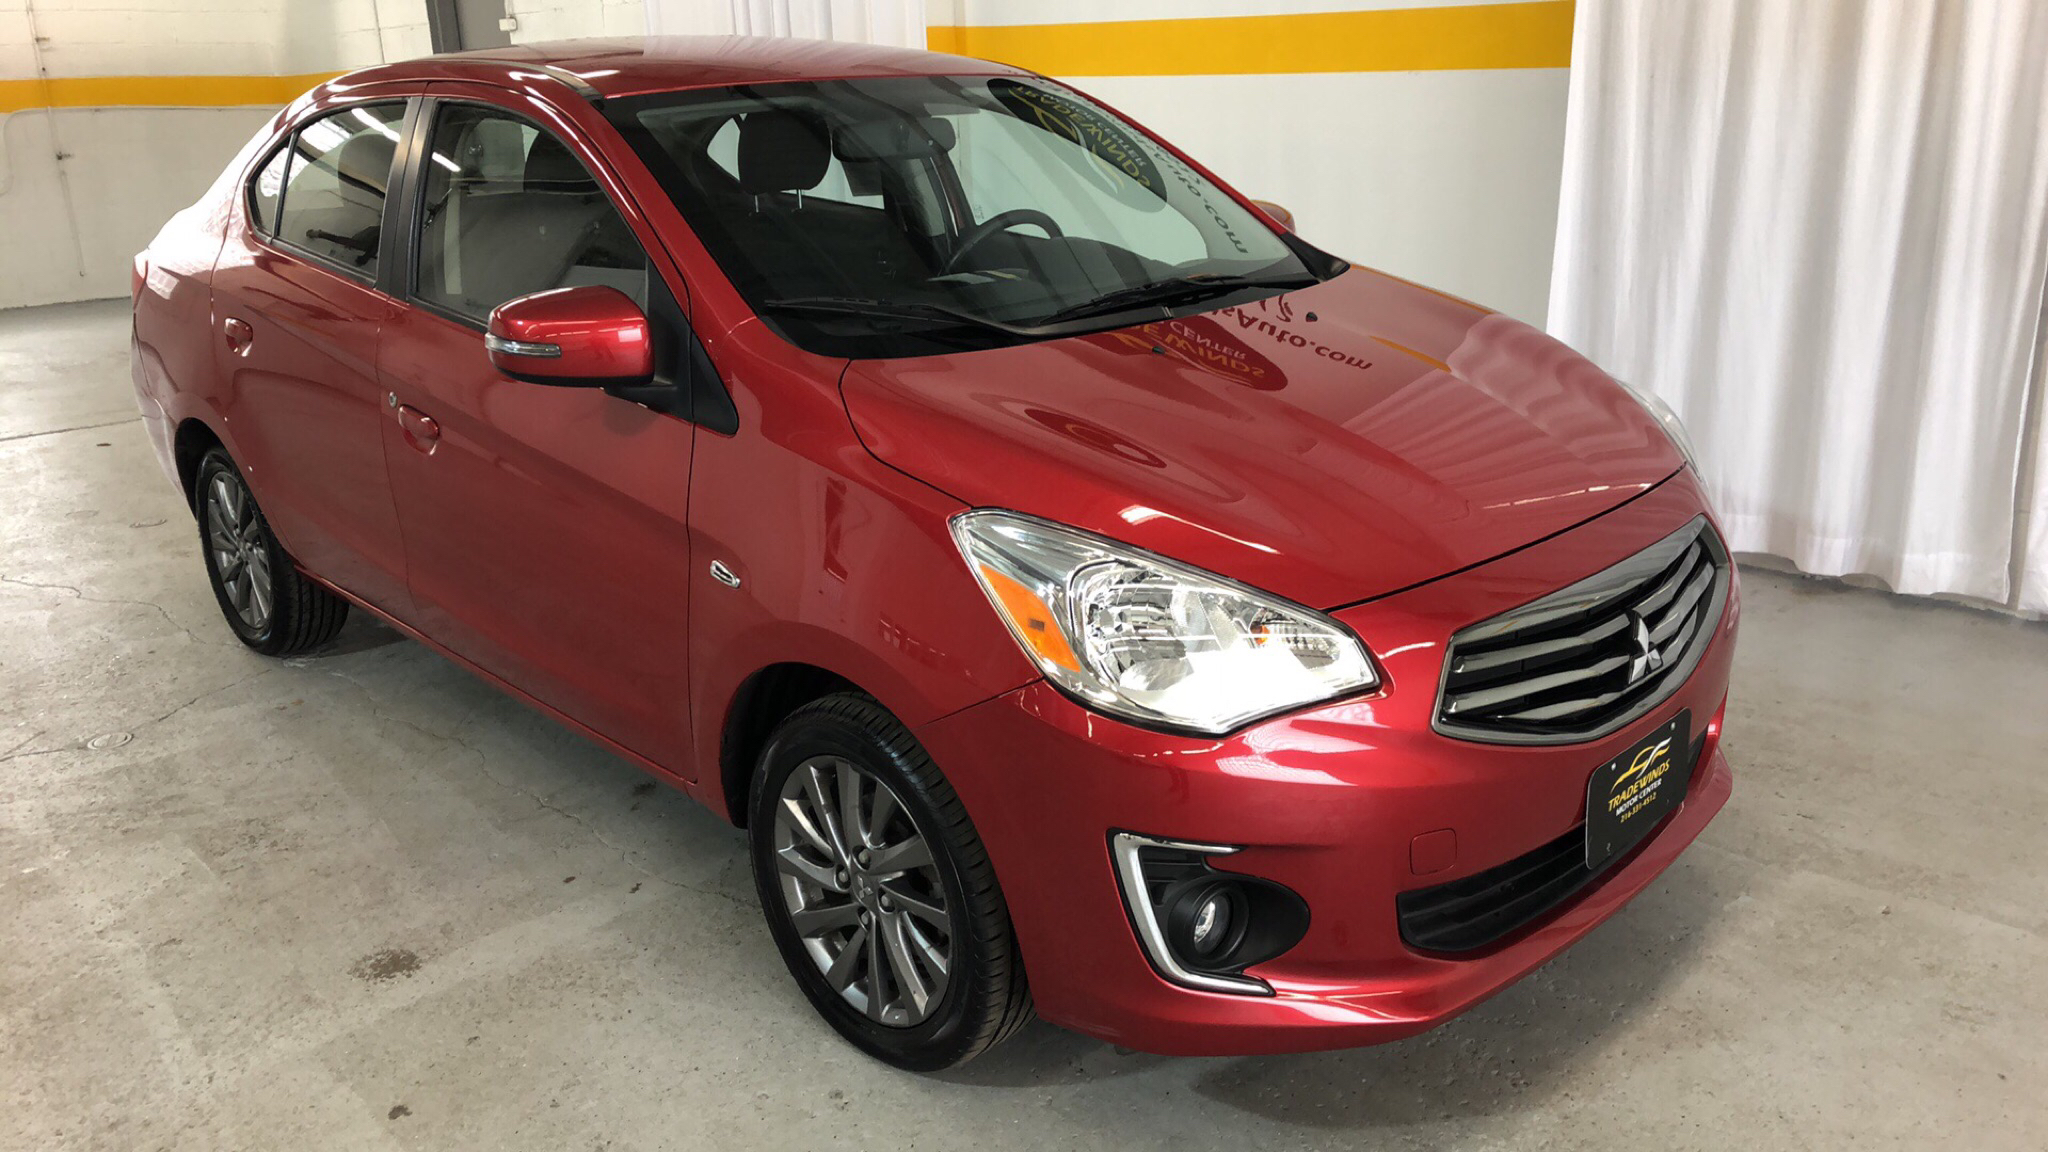 2017 MITSUBISHI MIRAGE G4 SE for sale at Tradewinds Motor Center